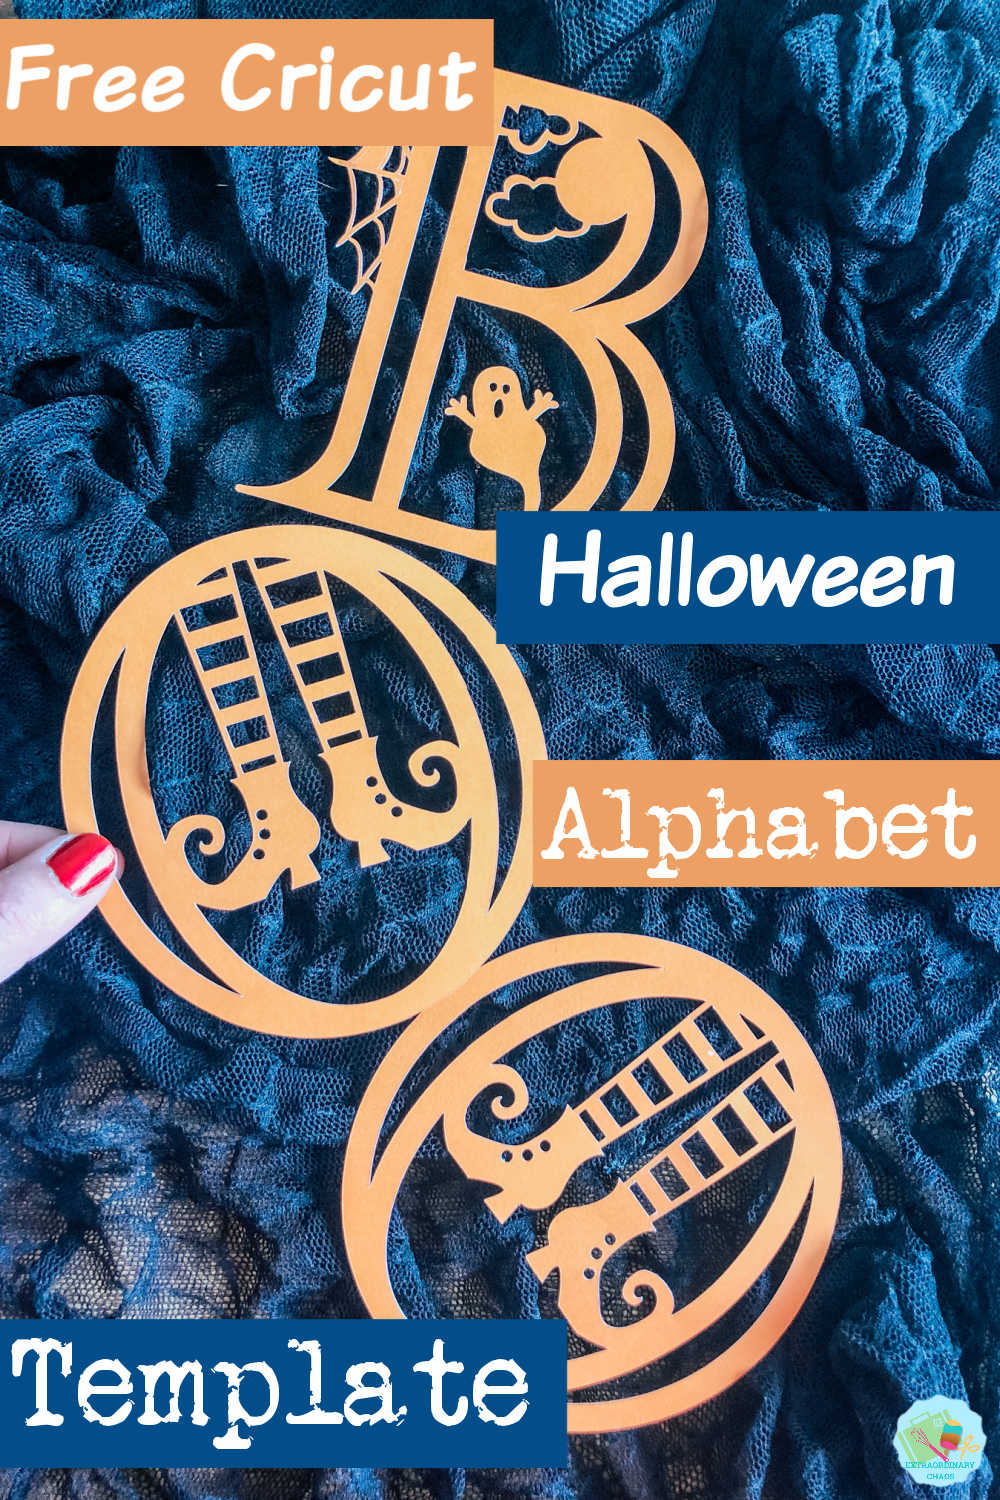 Free Cricut Halloween Alphabet for Cricut Halloween crafts , creating decorations and trick or treating